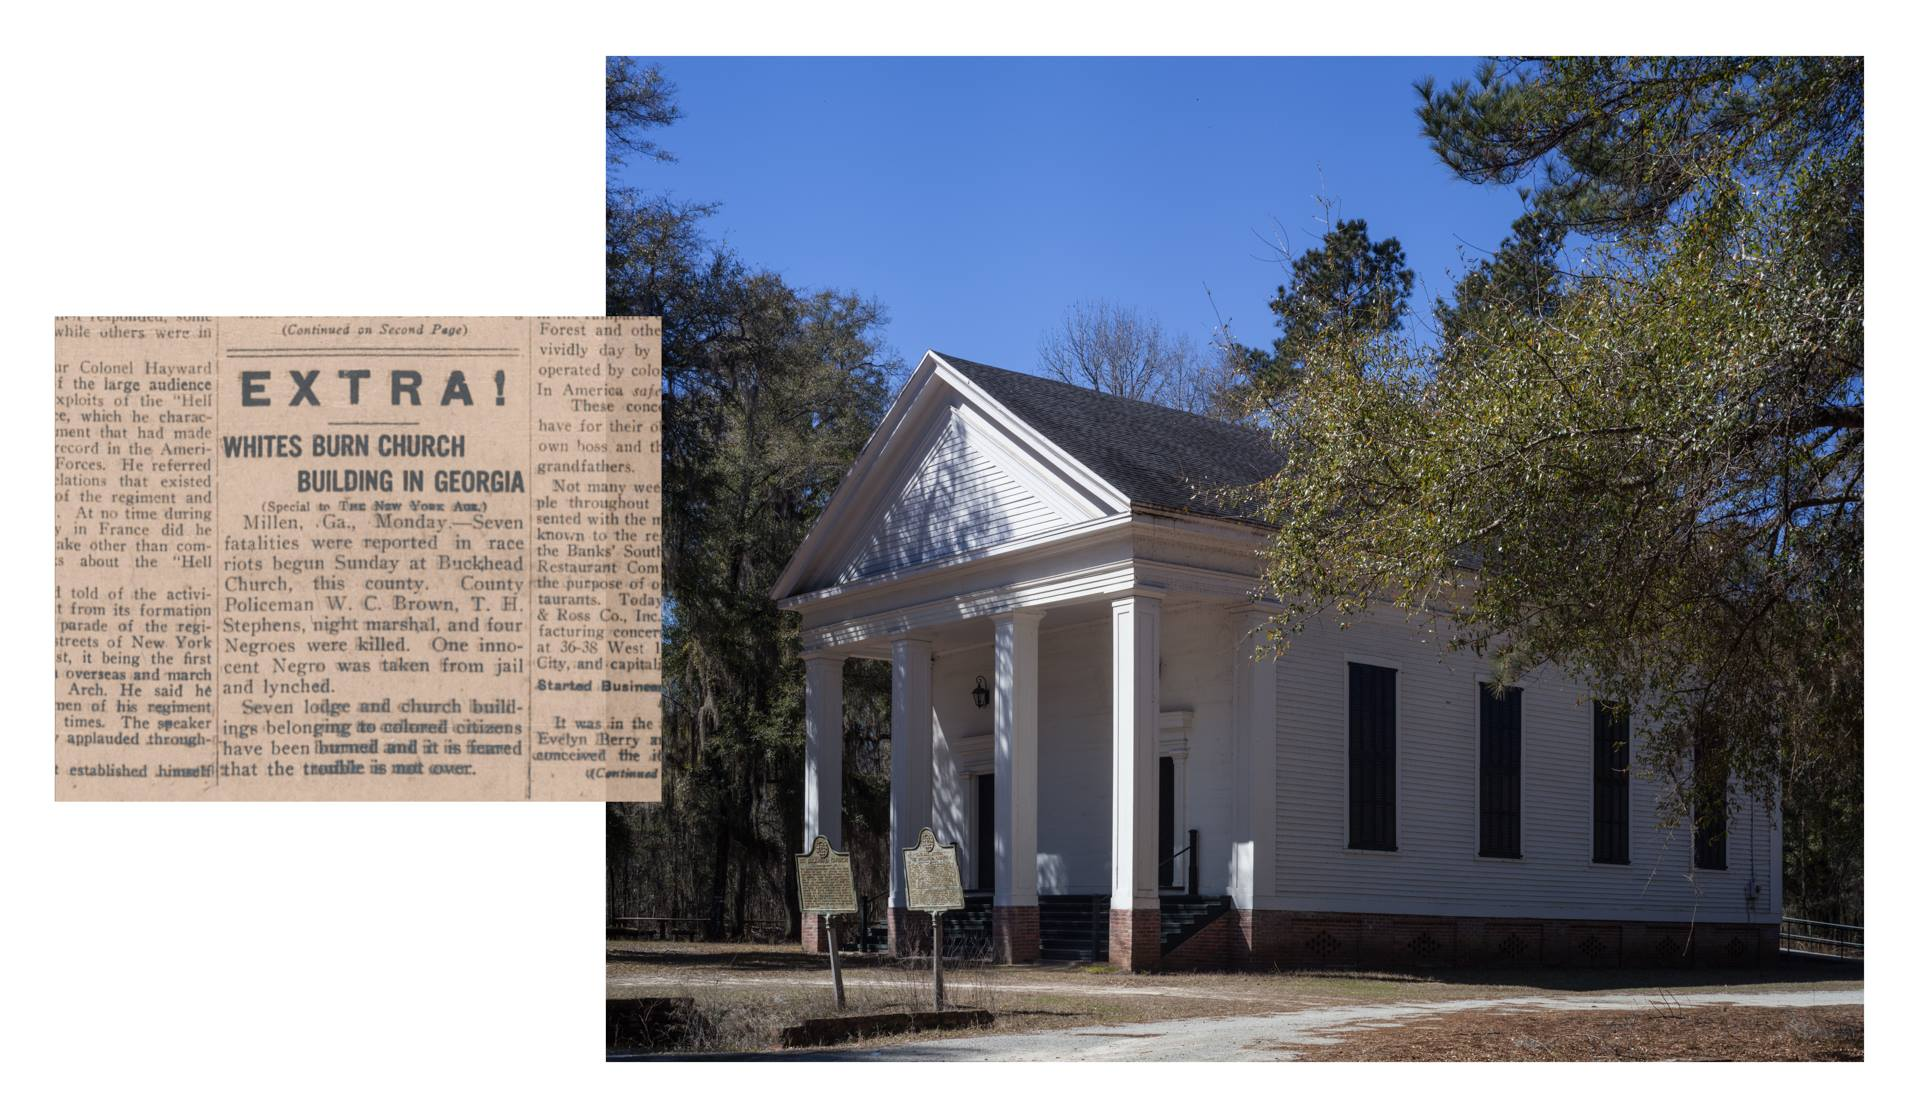 Image of white church building with newspaper clipping titled